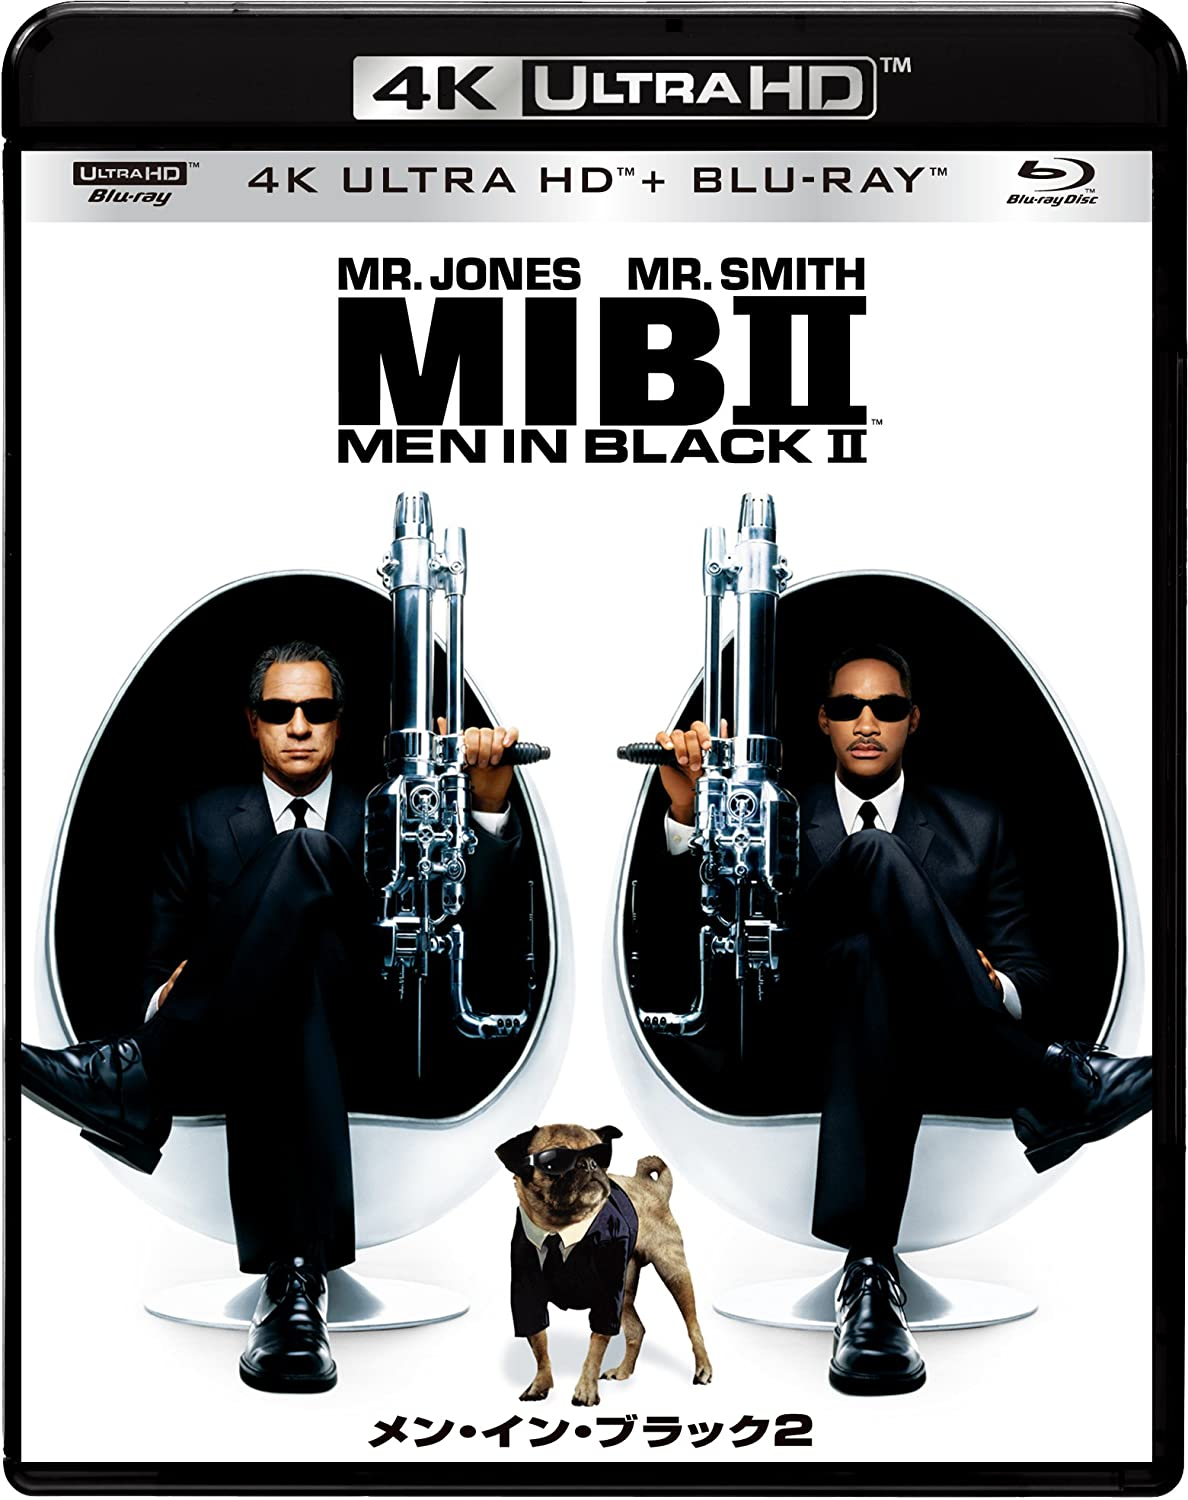 فيلم Men In Black II 2002 مترجم HD | توك توك سينما